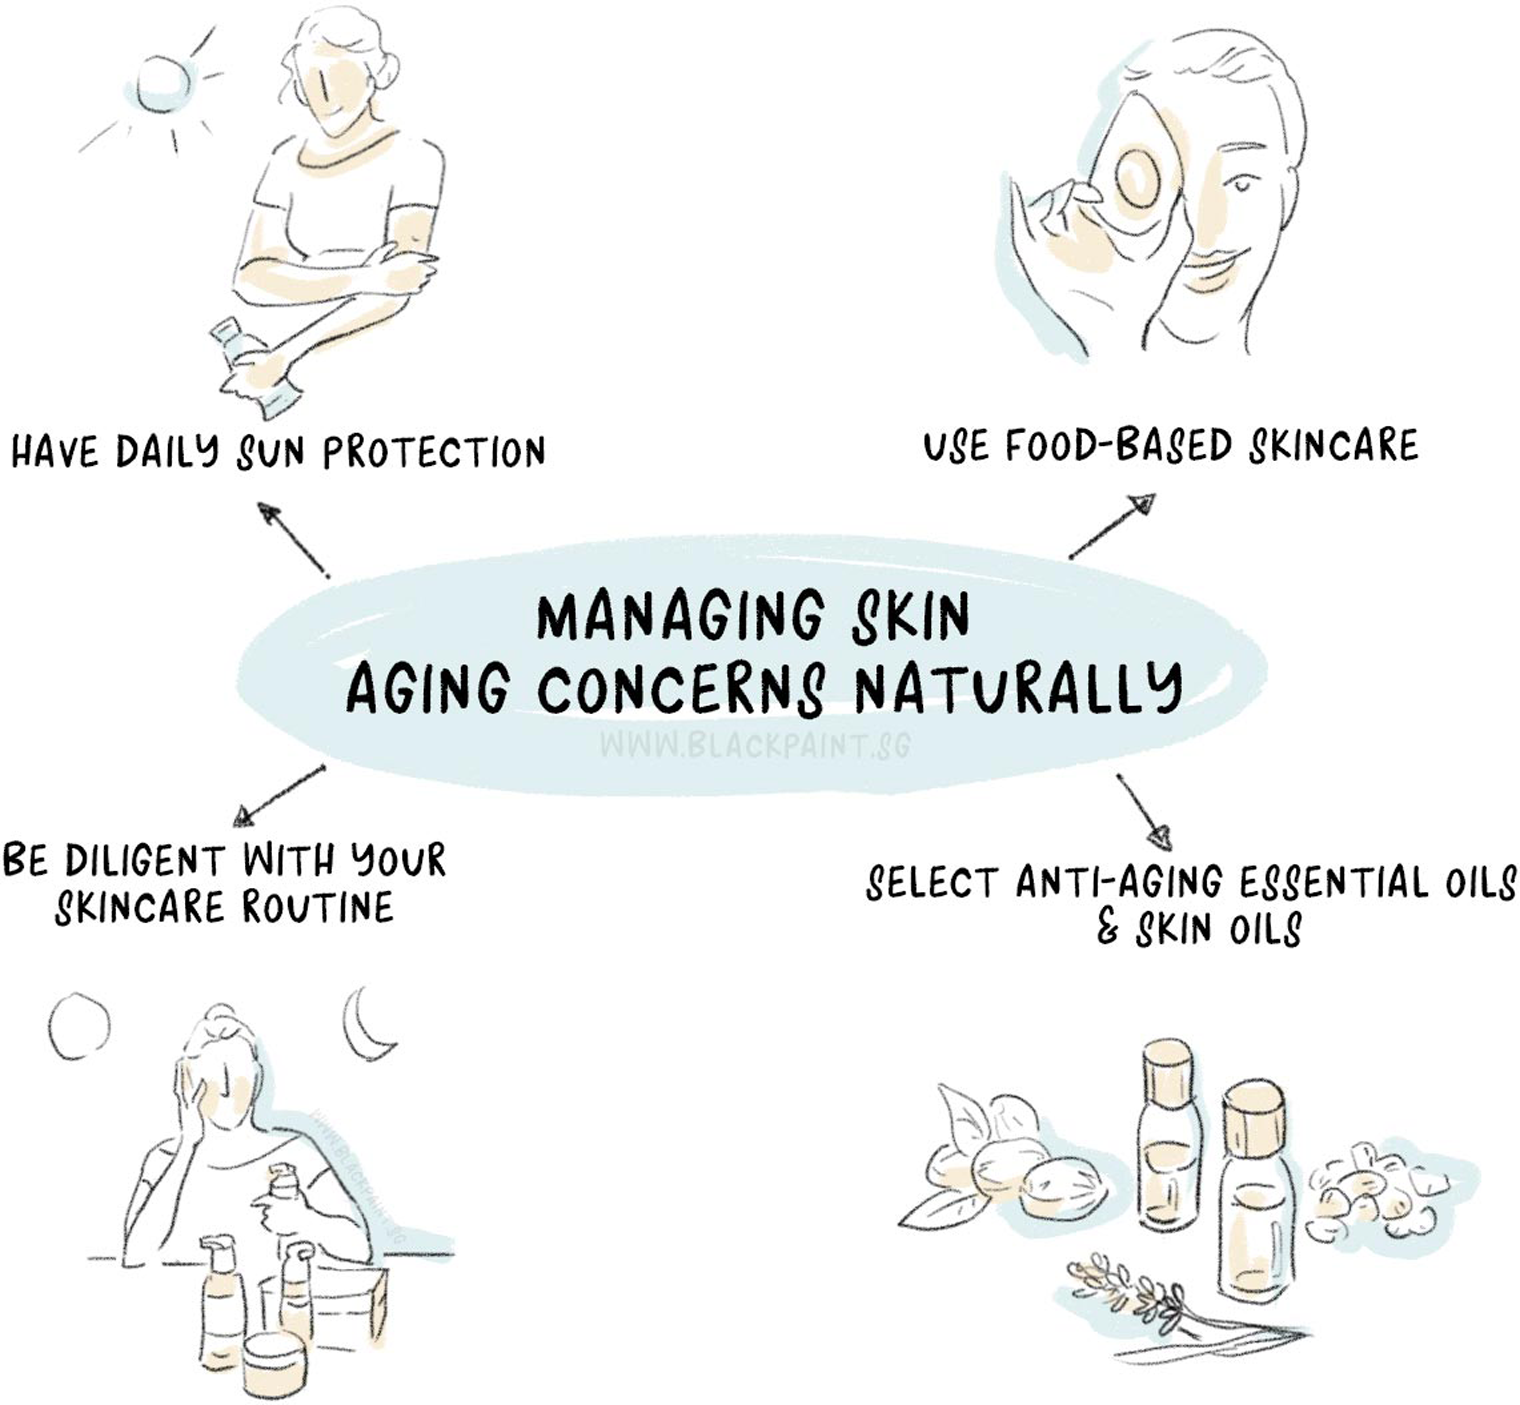 illustration of skin aging concerns can be managed through natural means.